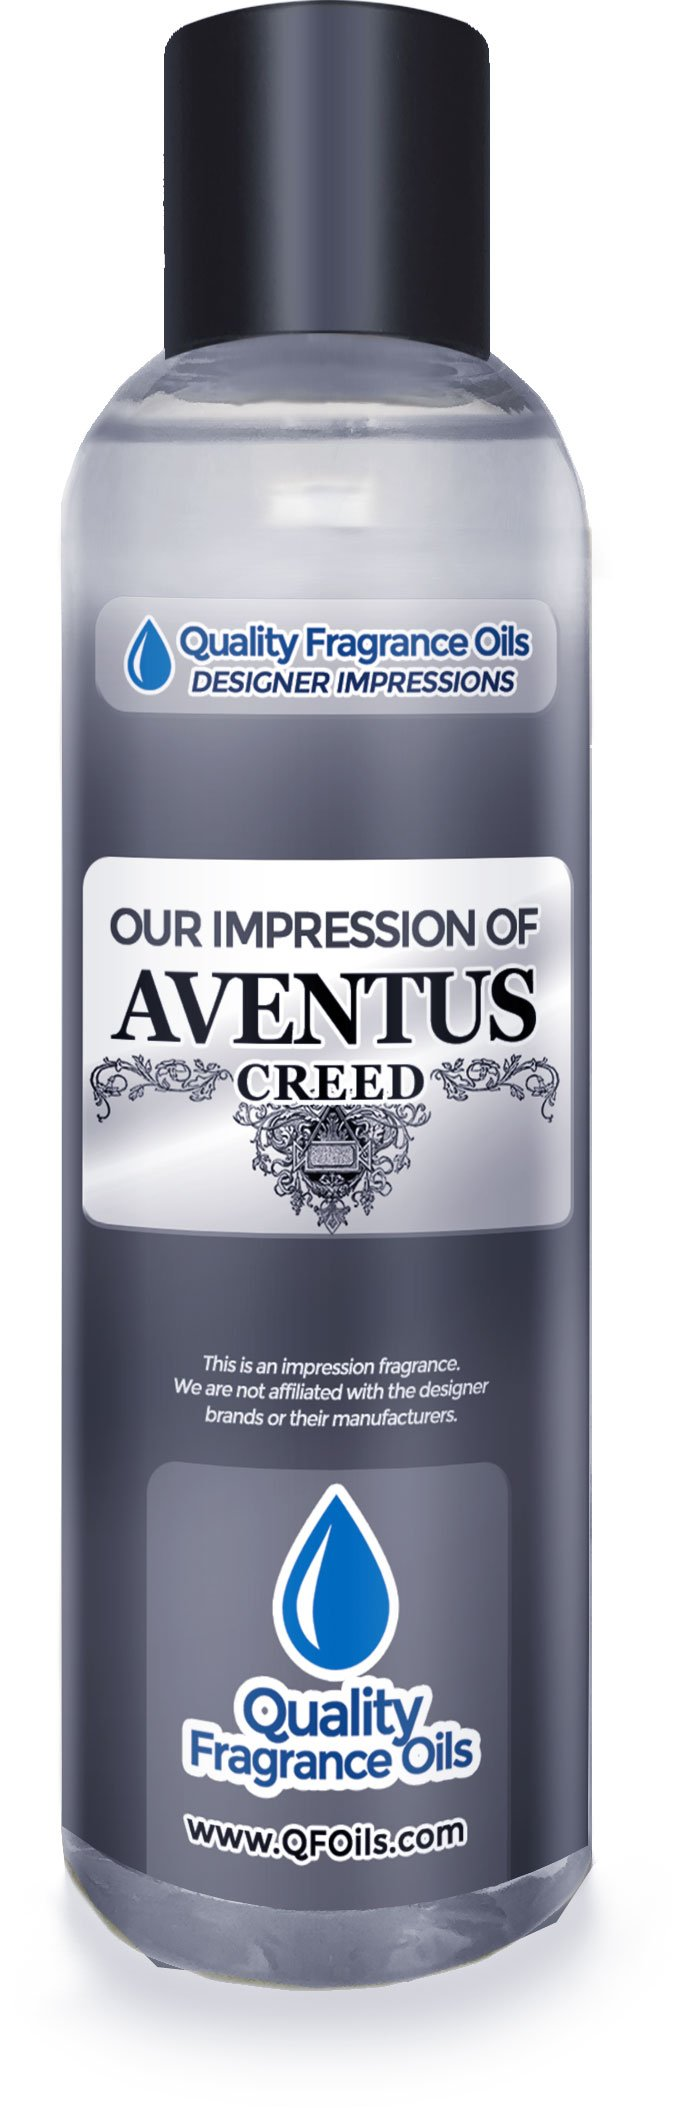 Aventus Impression By Quality Fragrance Oils (4oz) for Men - Generic version of Creed Aventus